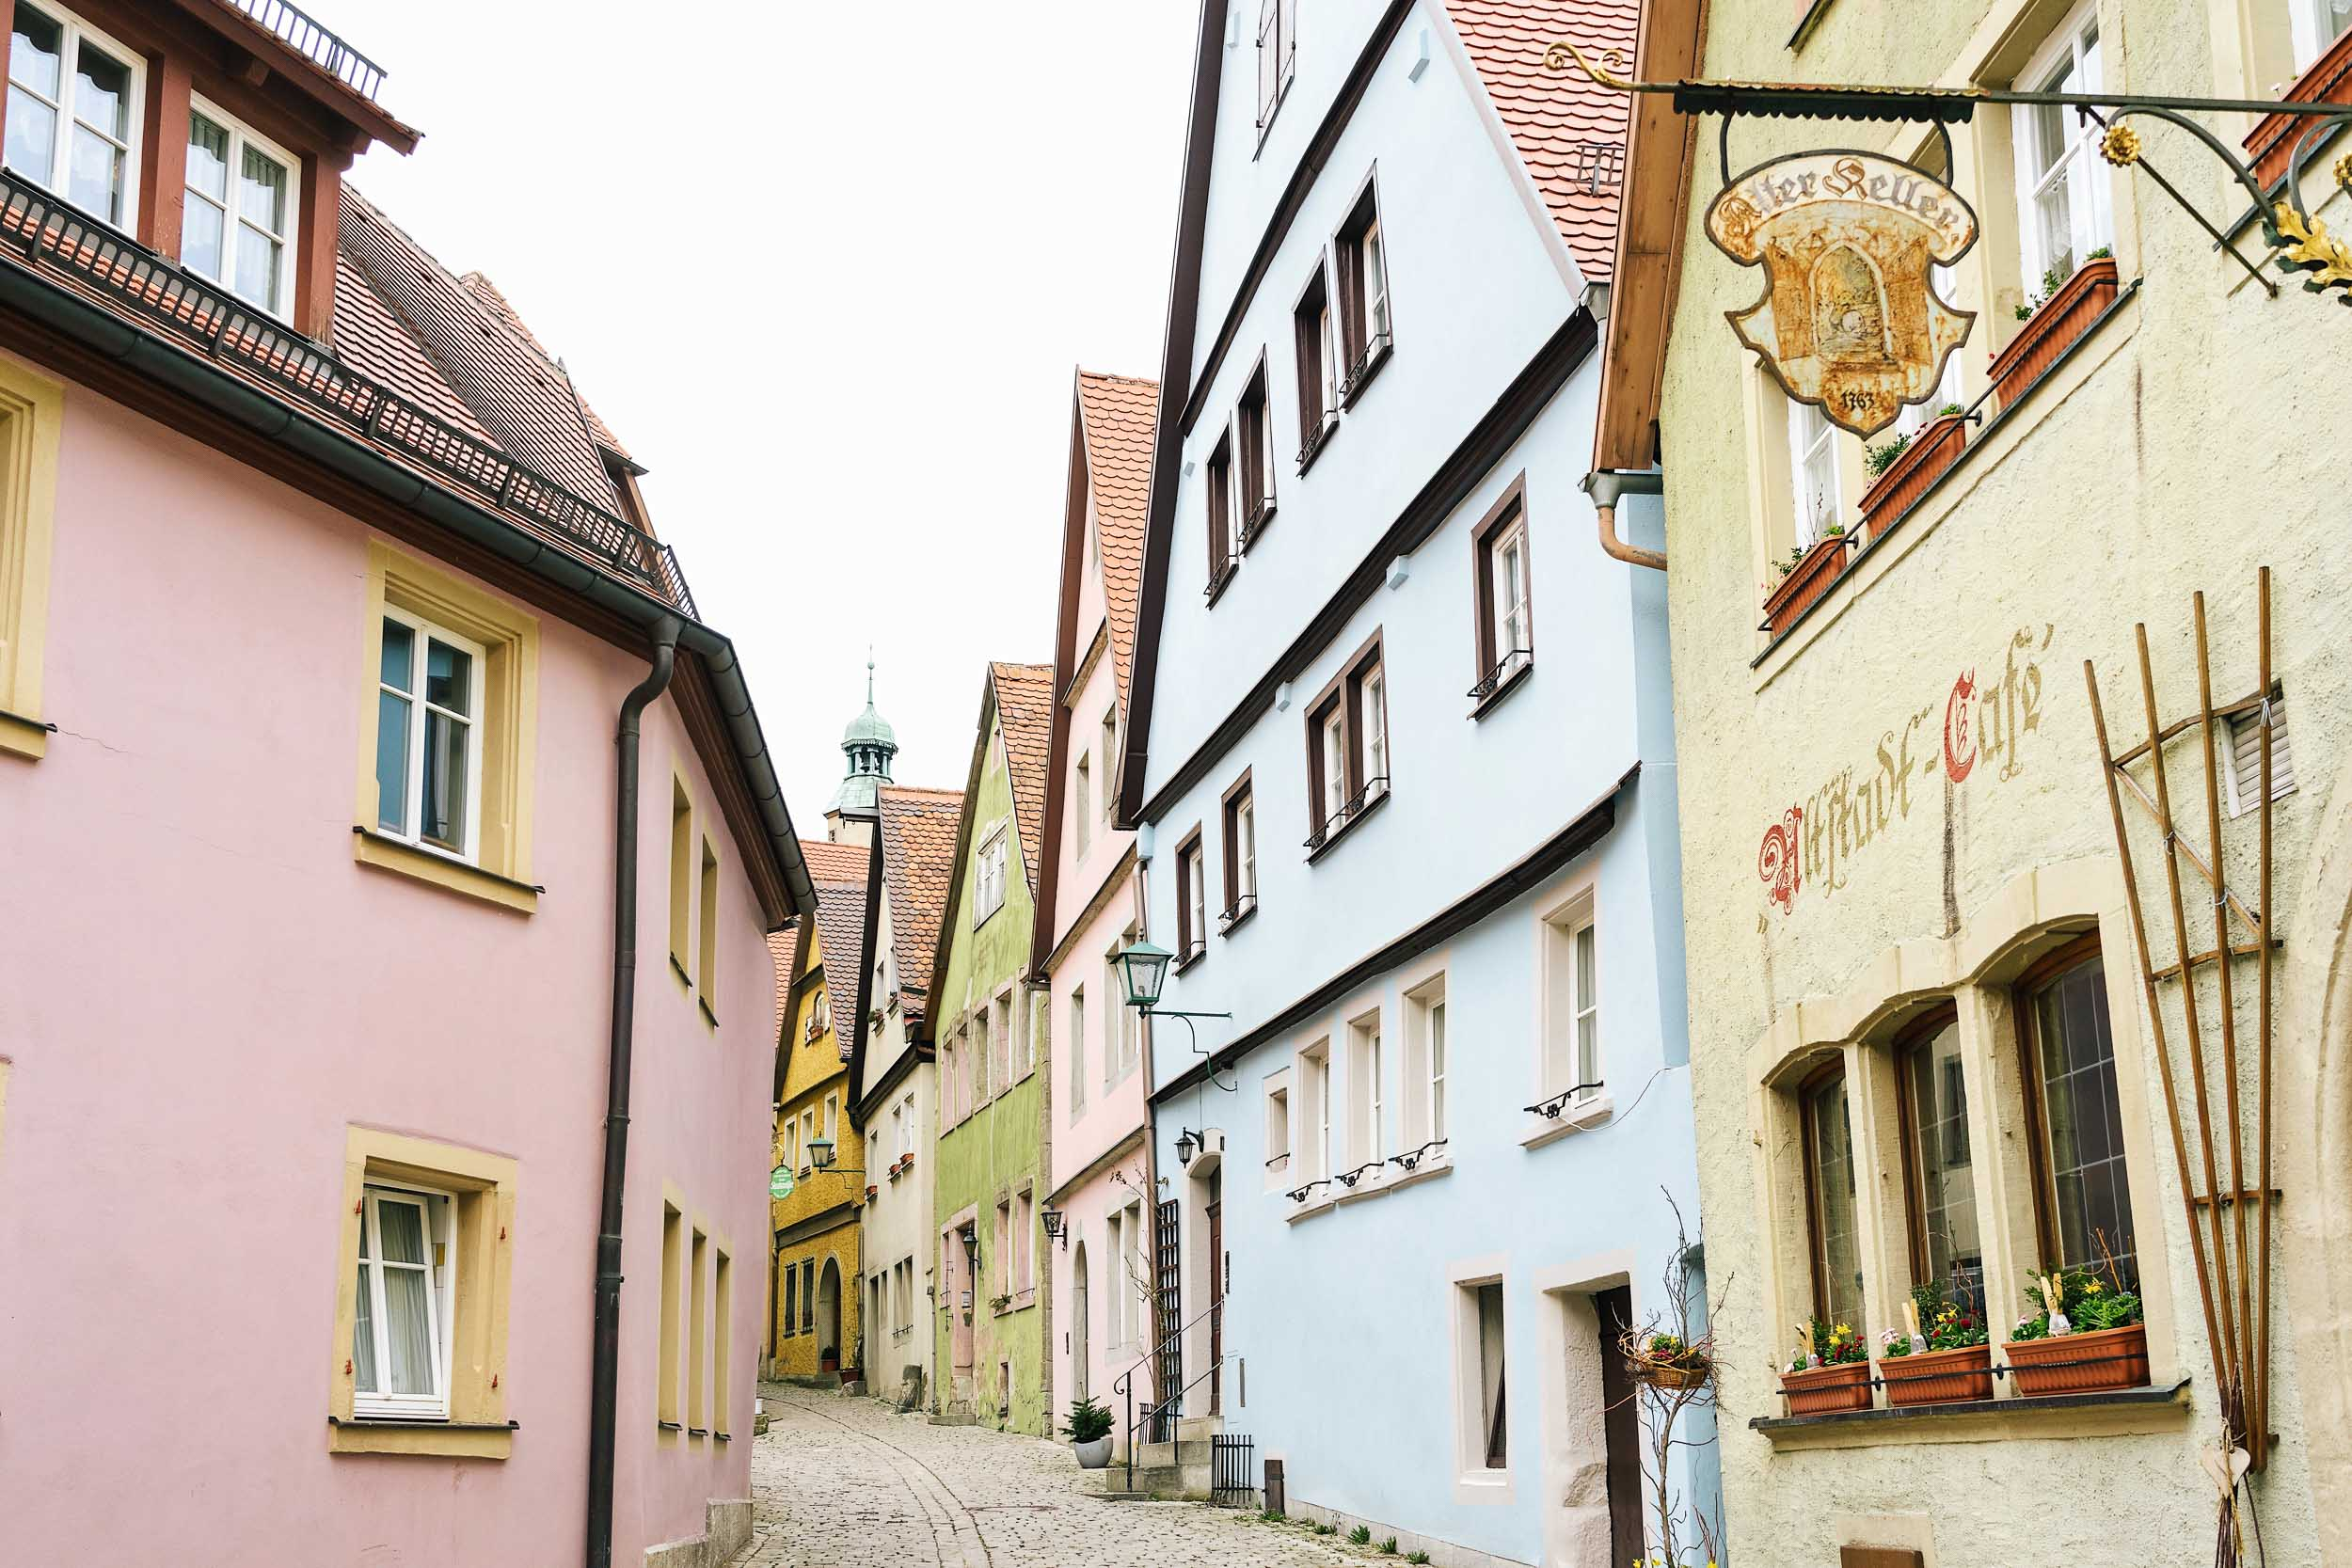 A very colorful European town: Rothenburg, Germany